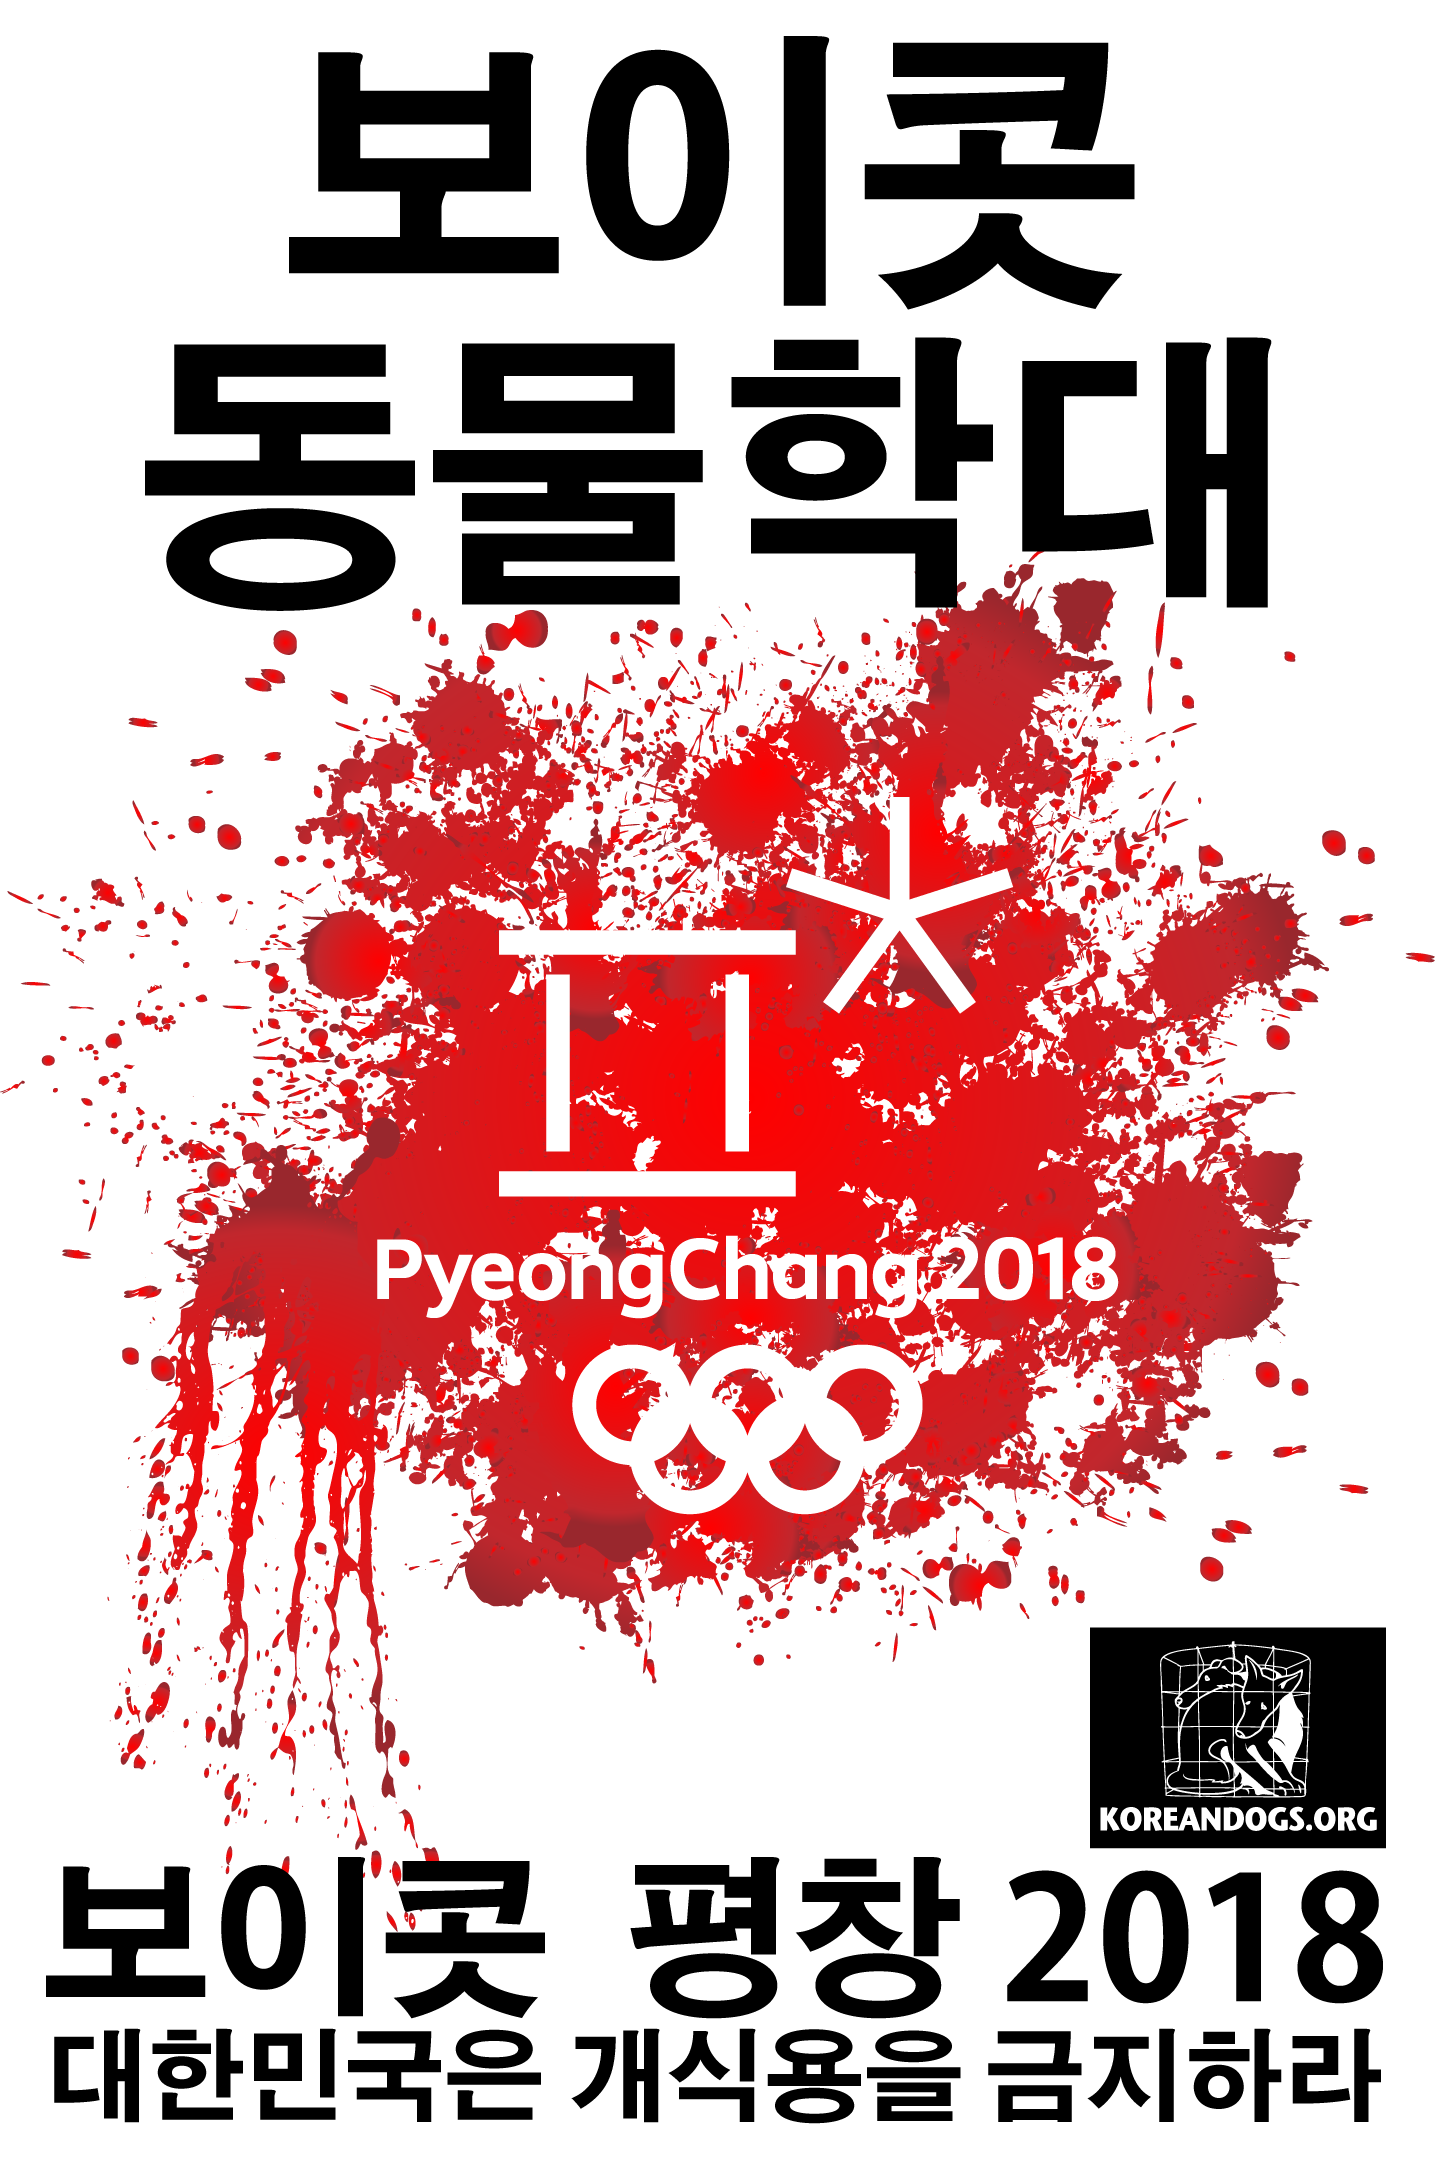 Call for Action: PyeongChang 2018 – Honorary Ambassadors